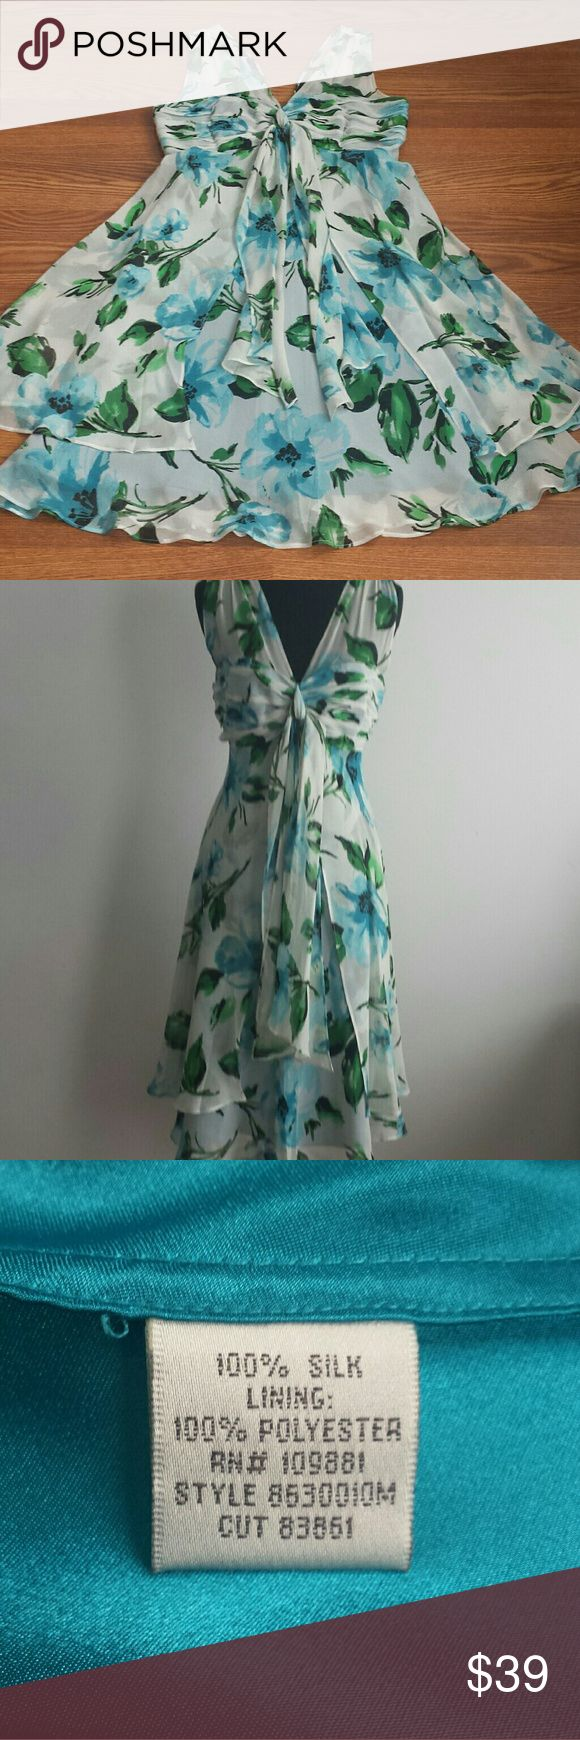 "Donna Ricco Silk Dress Gorgeous silk chiffon floral dress in white, blue, and green from Donna Ricco. Flattering A-line cut and necklibe. Would be perfect for a wedding, a graduation, a christening, etc. Measurements: Length = 42"";  Bust = 36""; Waist = 33""; Hips = 40"". Donna Ricco Dresses"